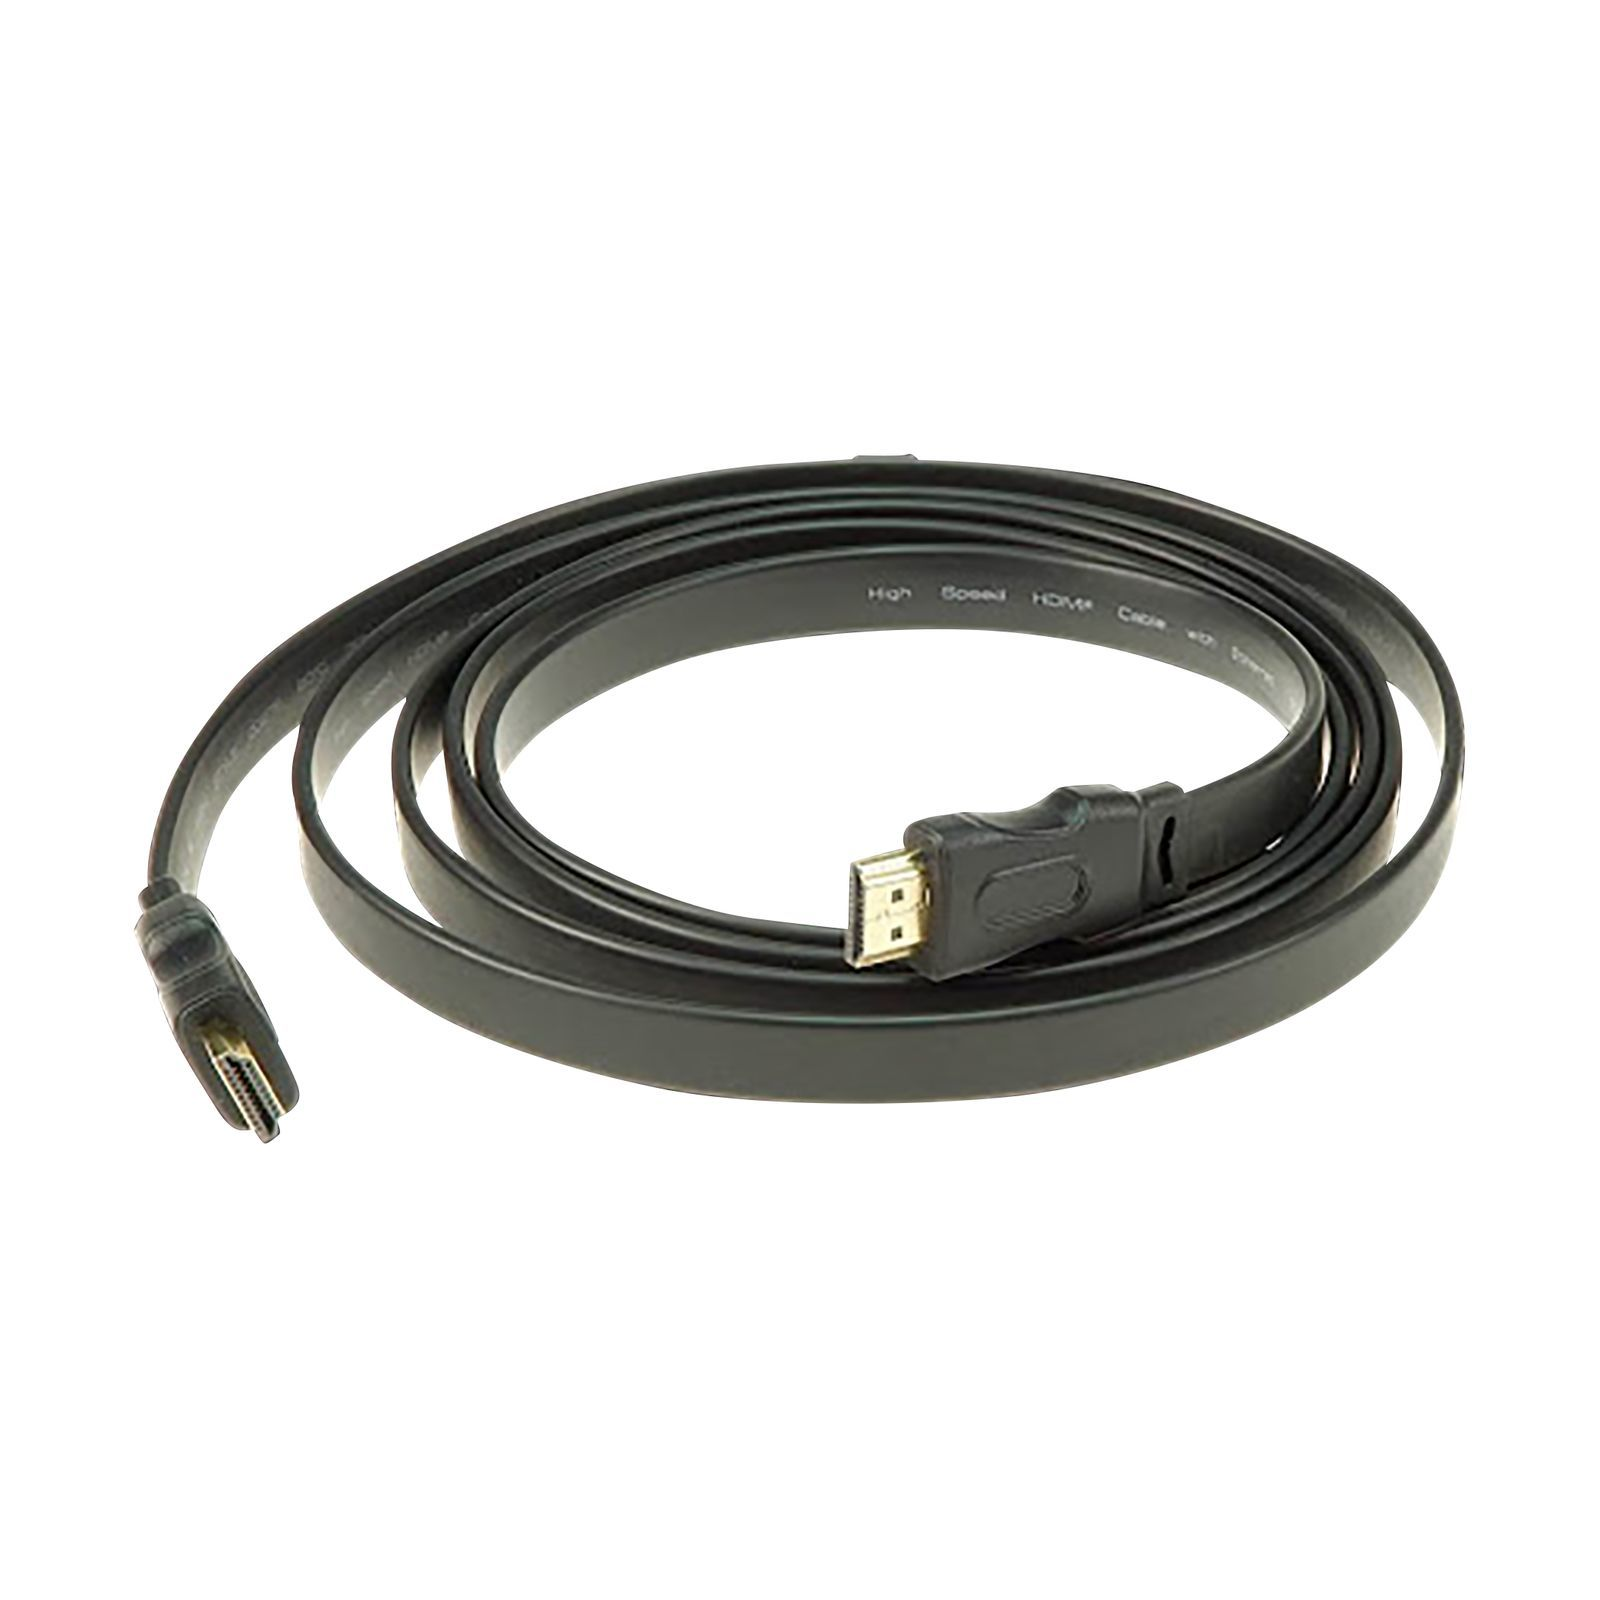 Klotz HDMI 1.4a High Speed A-A, 2 Meter, Flachkabel Produktbild